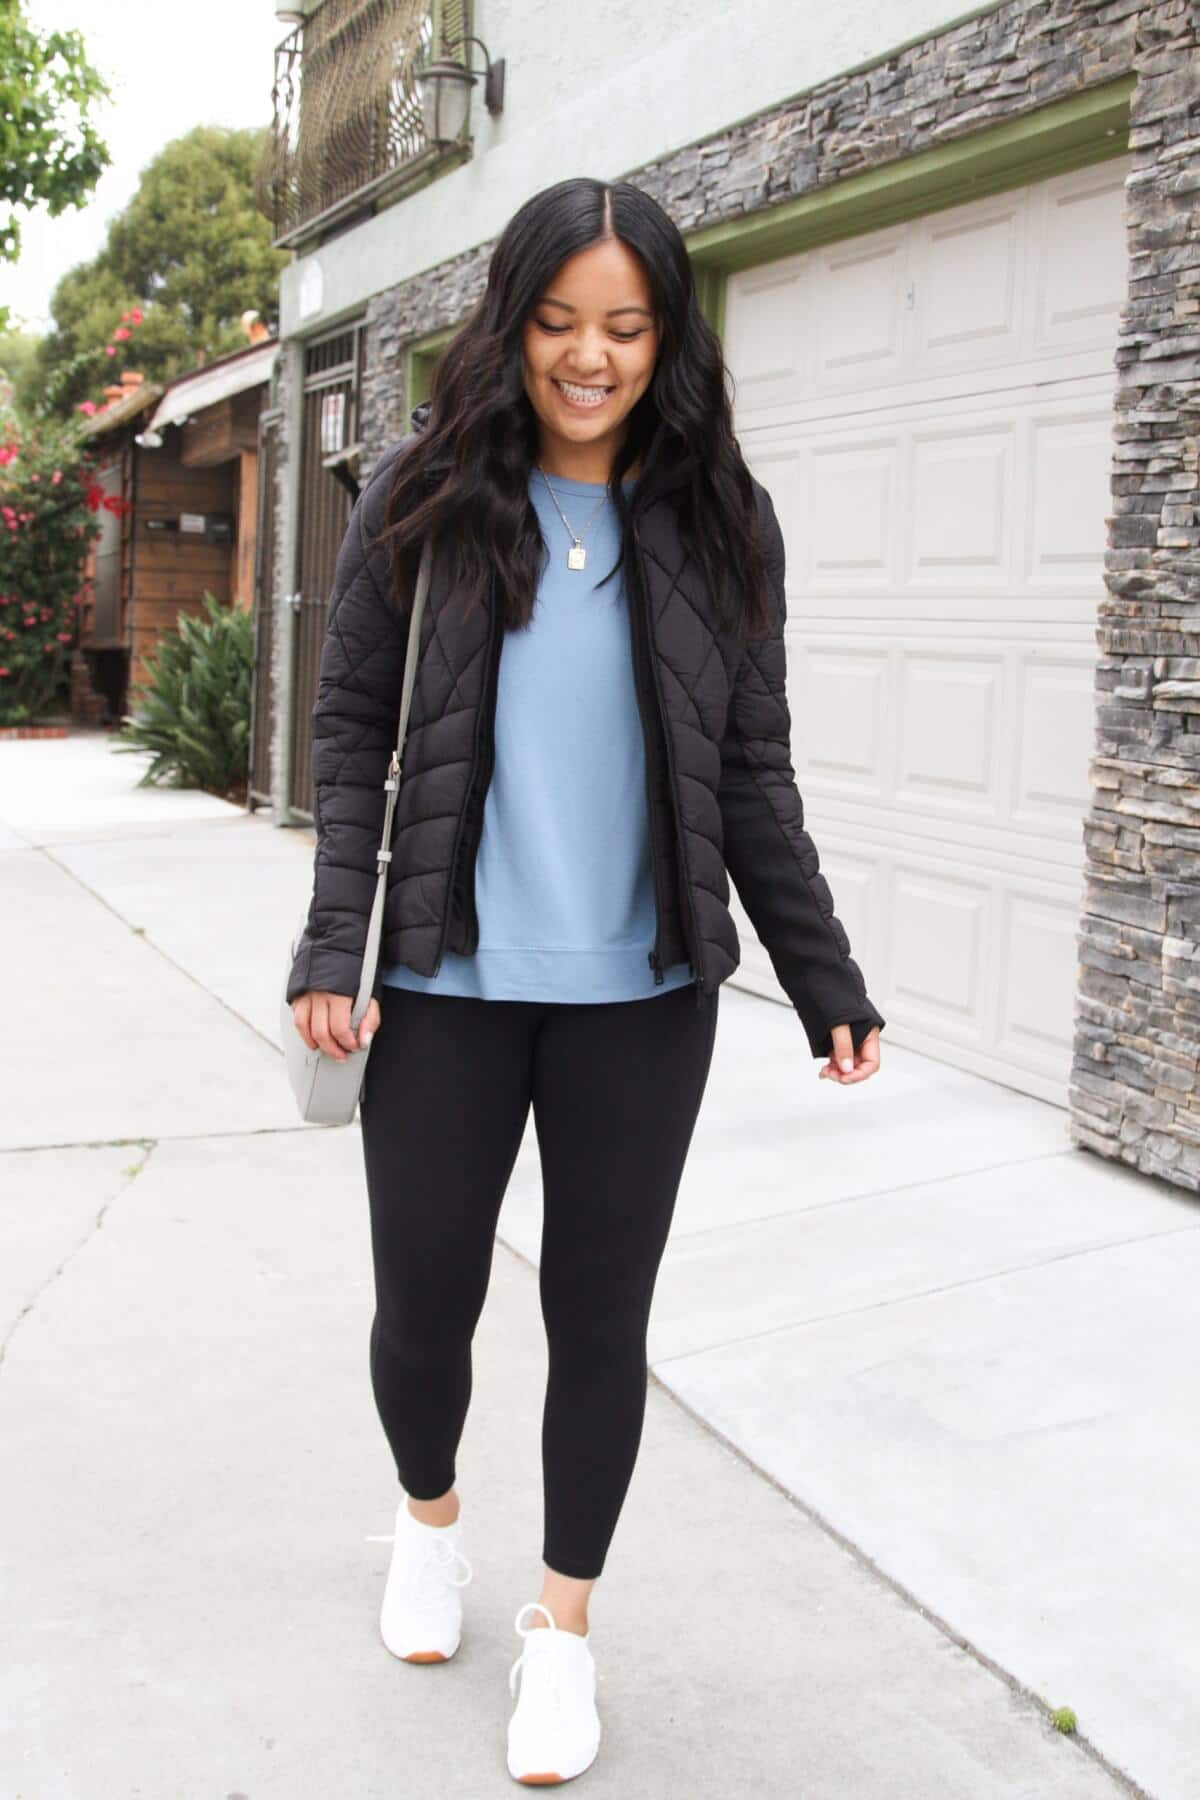 Athleisure Casual Outfit: blue sweatshirt + black leggings + black puffer jacket + white sneakers + gold initial pendant necklace + gray small crossbody bag